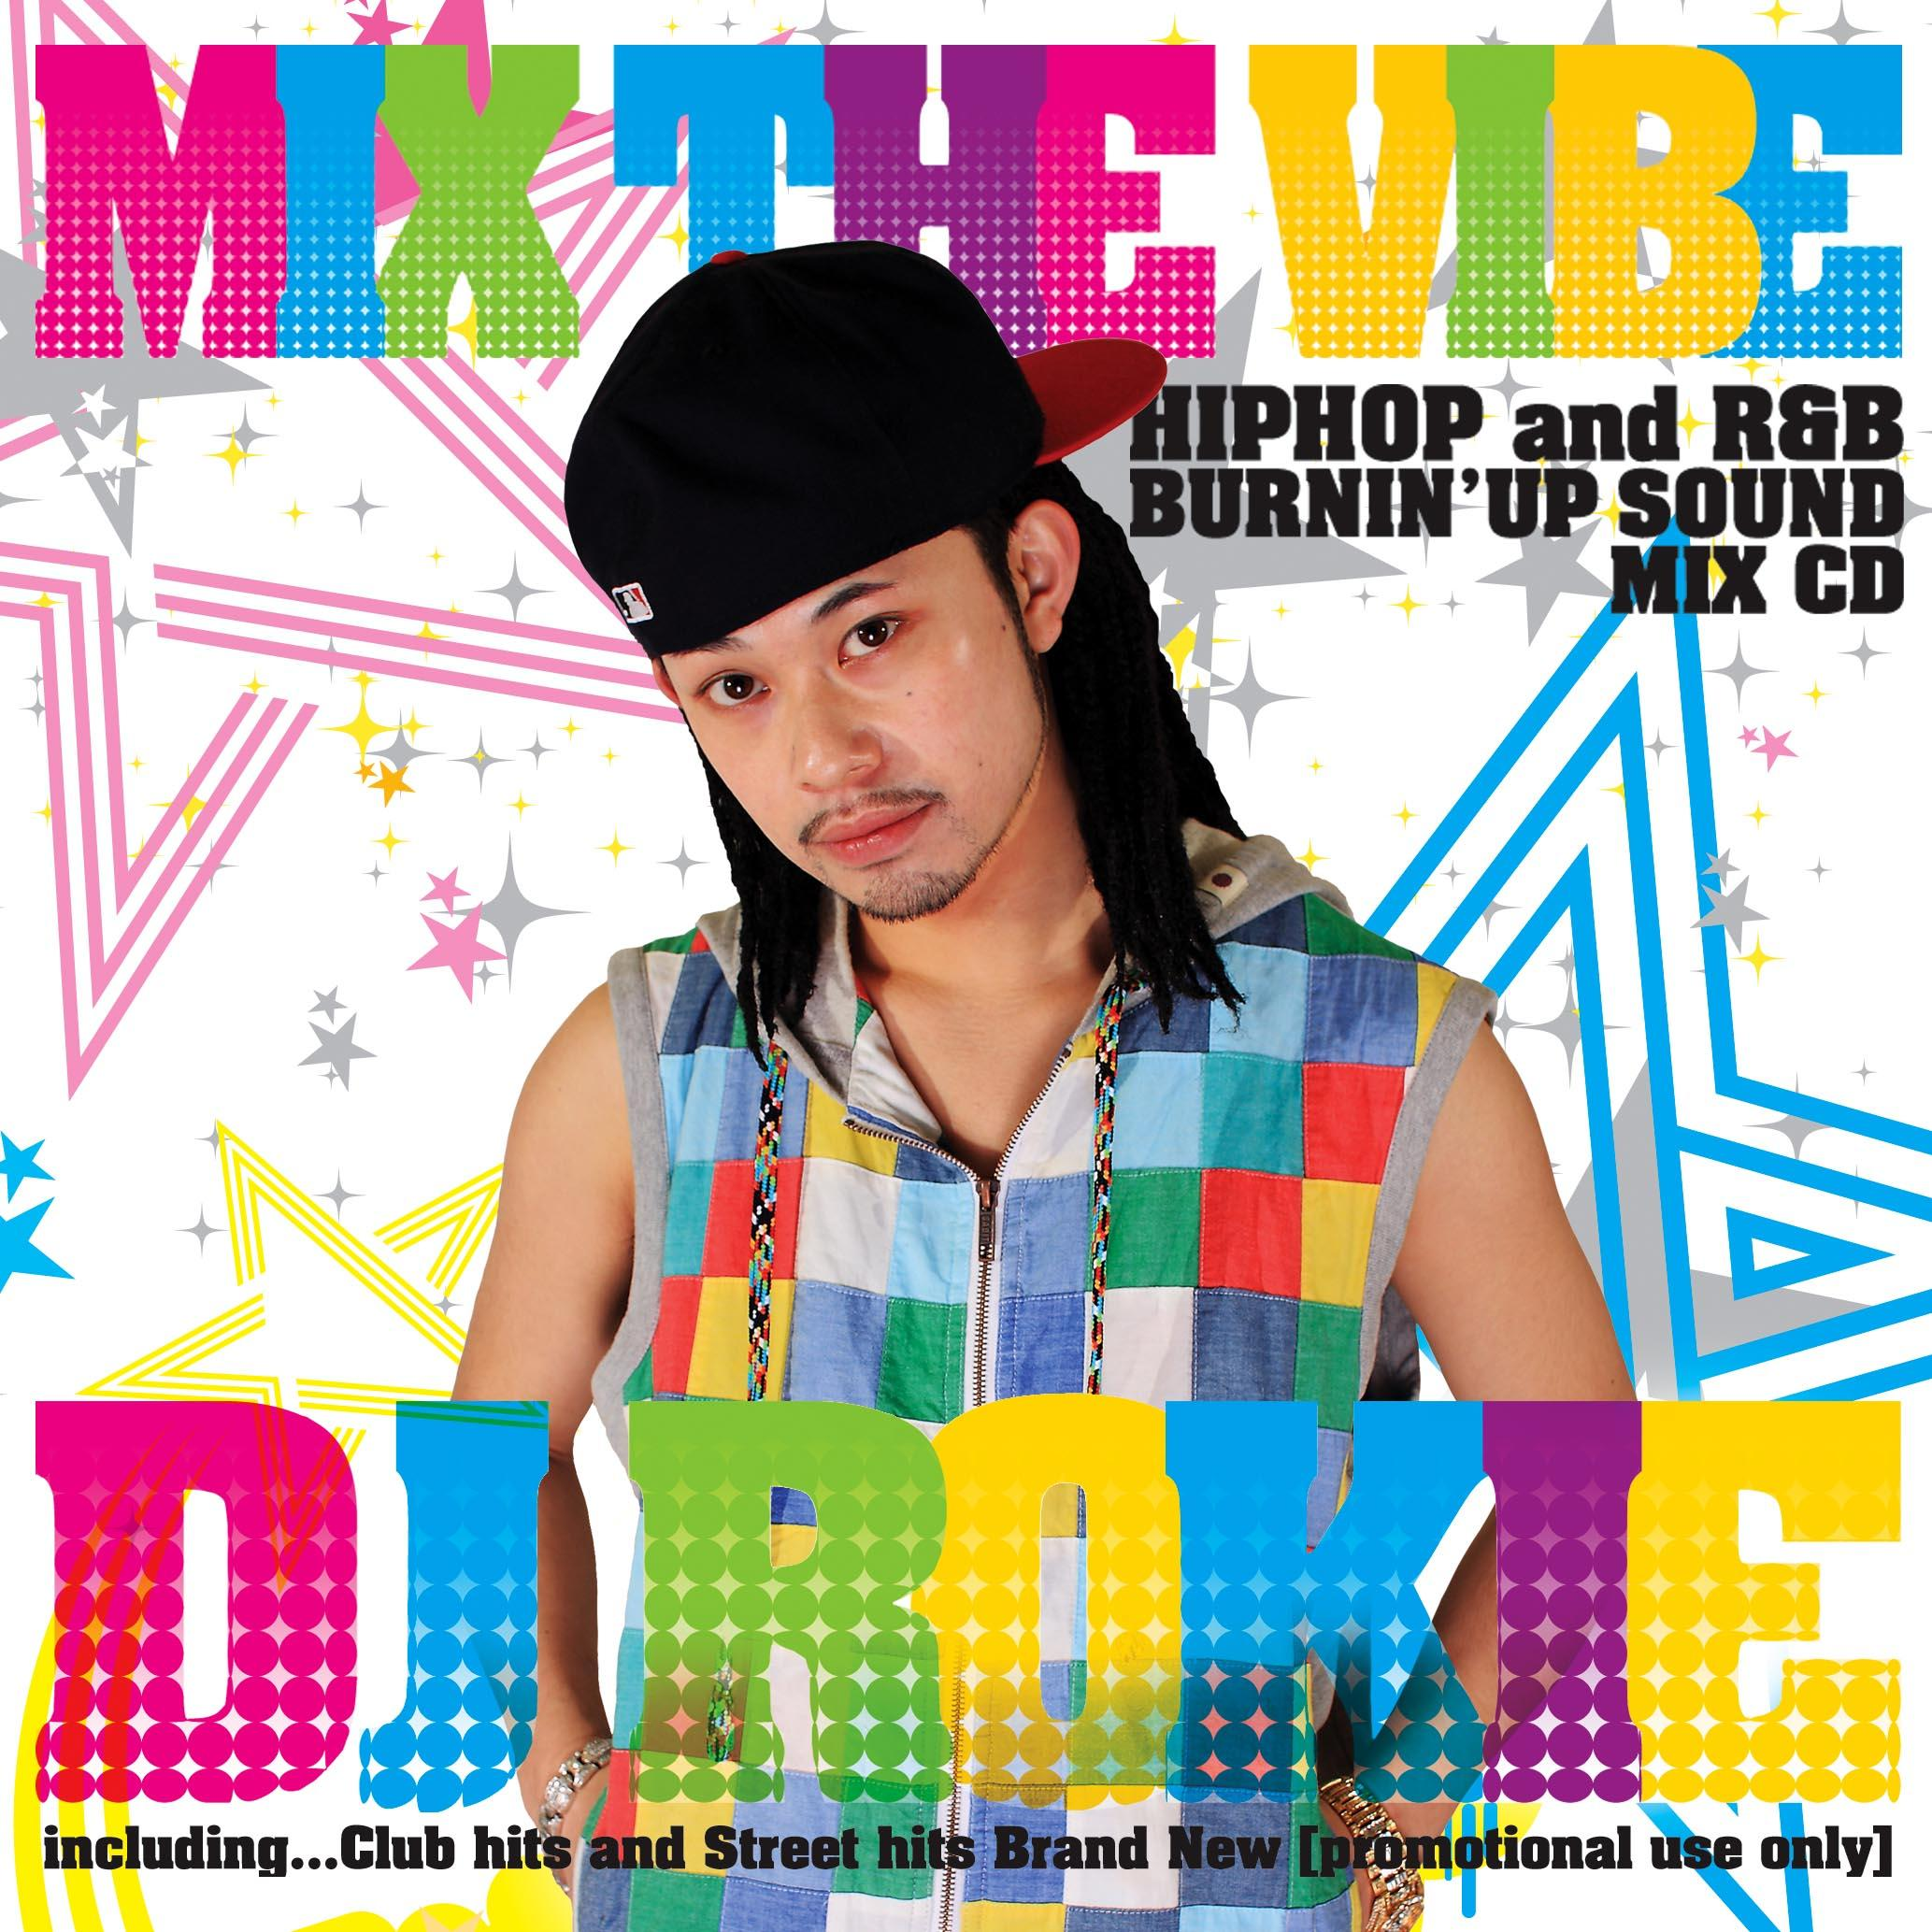 ロキィーnew MIX CD